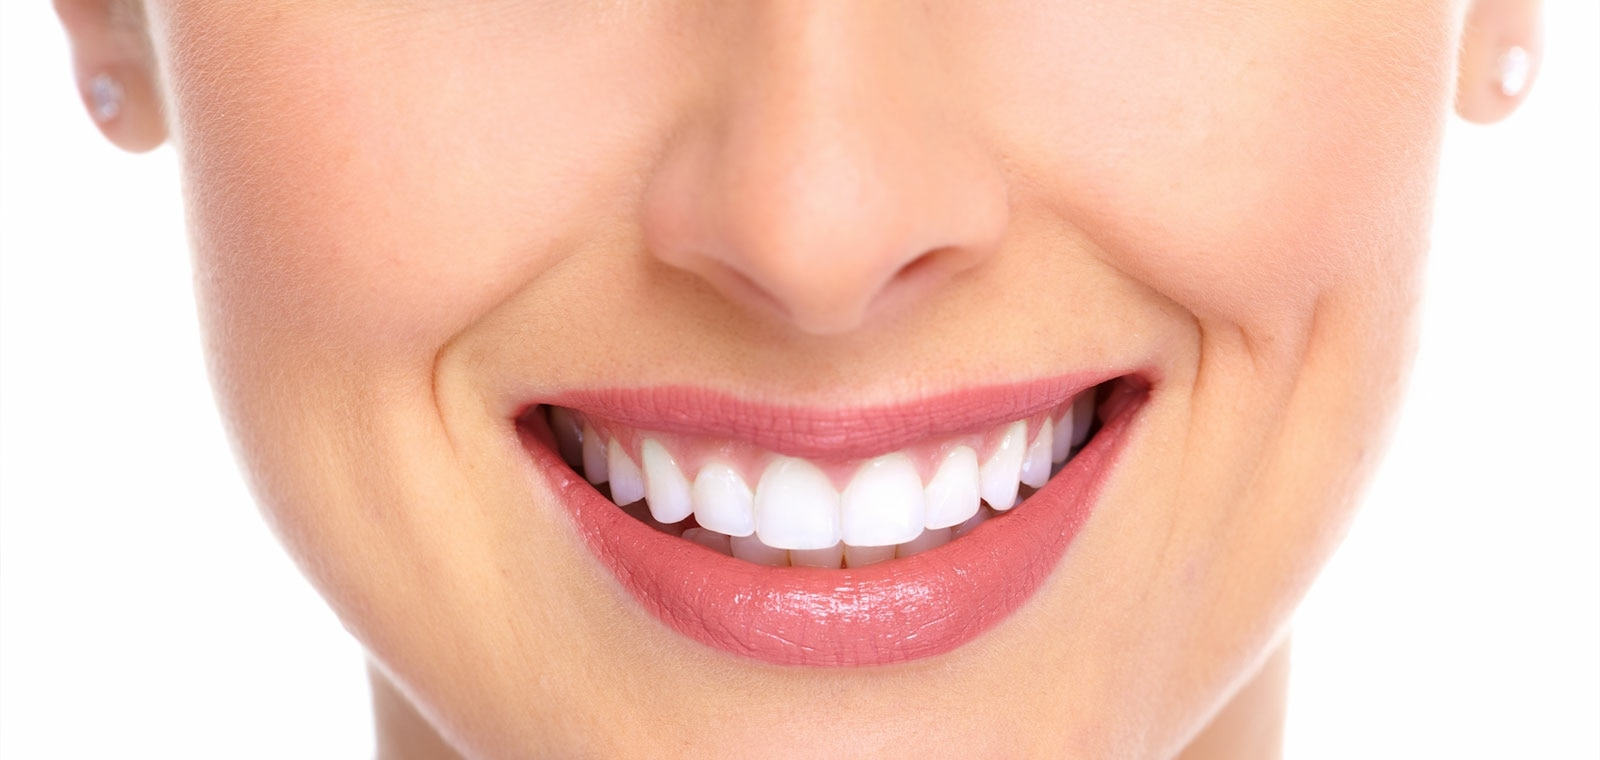 Foul smell, Bad breath, Swollen gums, Bleeding gums? No matter what toothpastes you use or how many times you brush, Dental Scaling is inevitable. Get your teeth cleaning and polishing done today for treatment. Dentist in Baroda @ Gotri